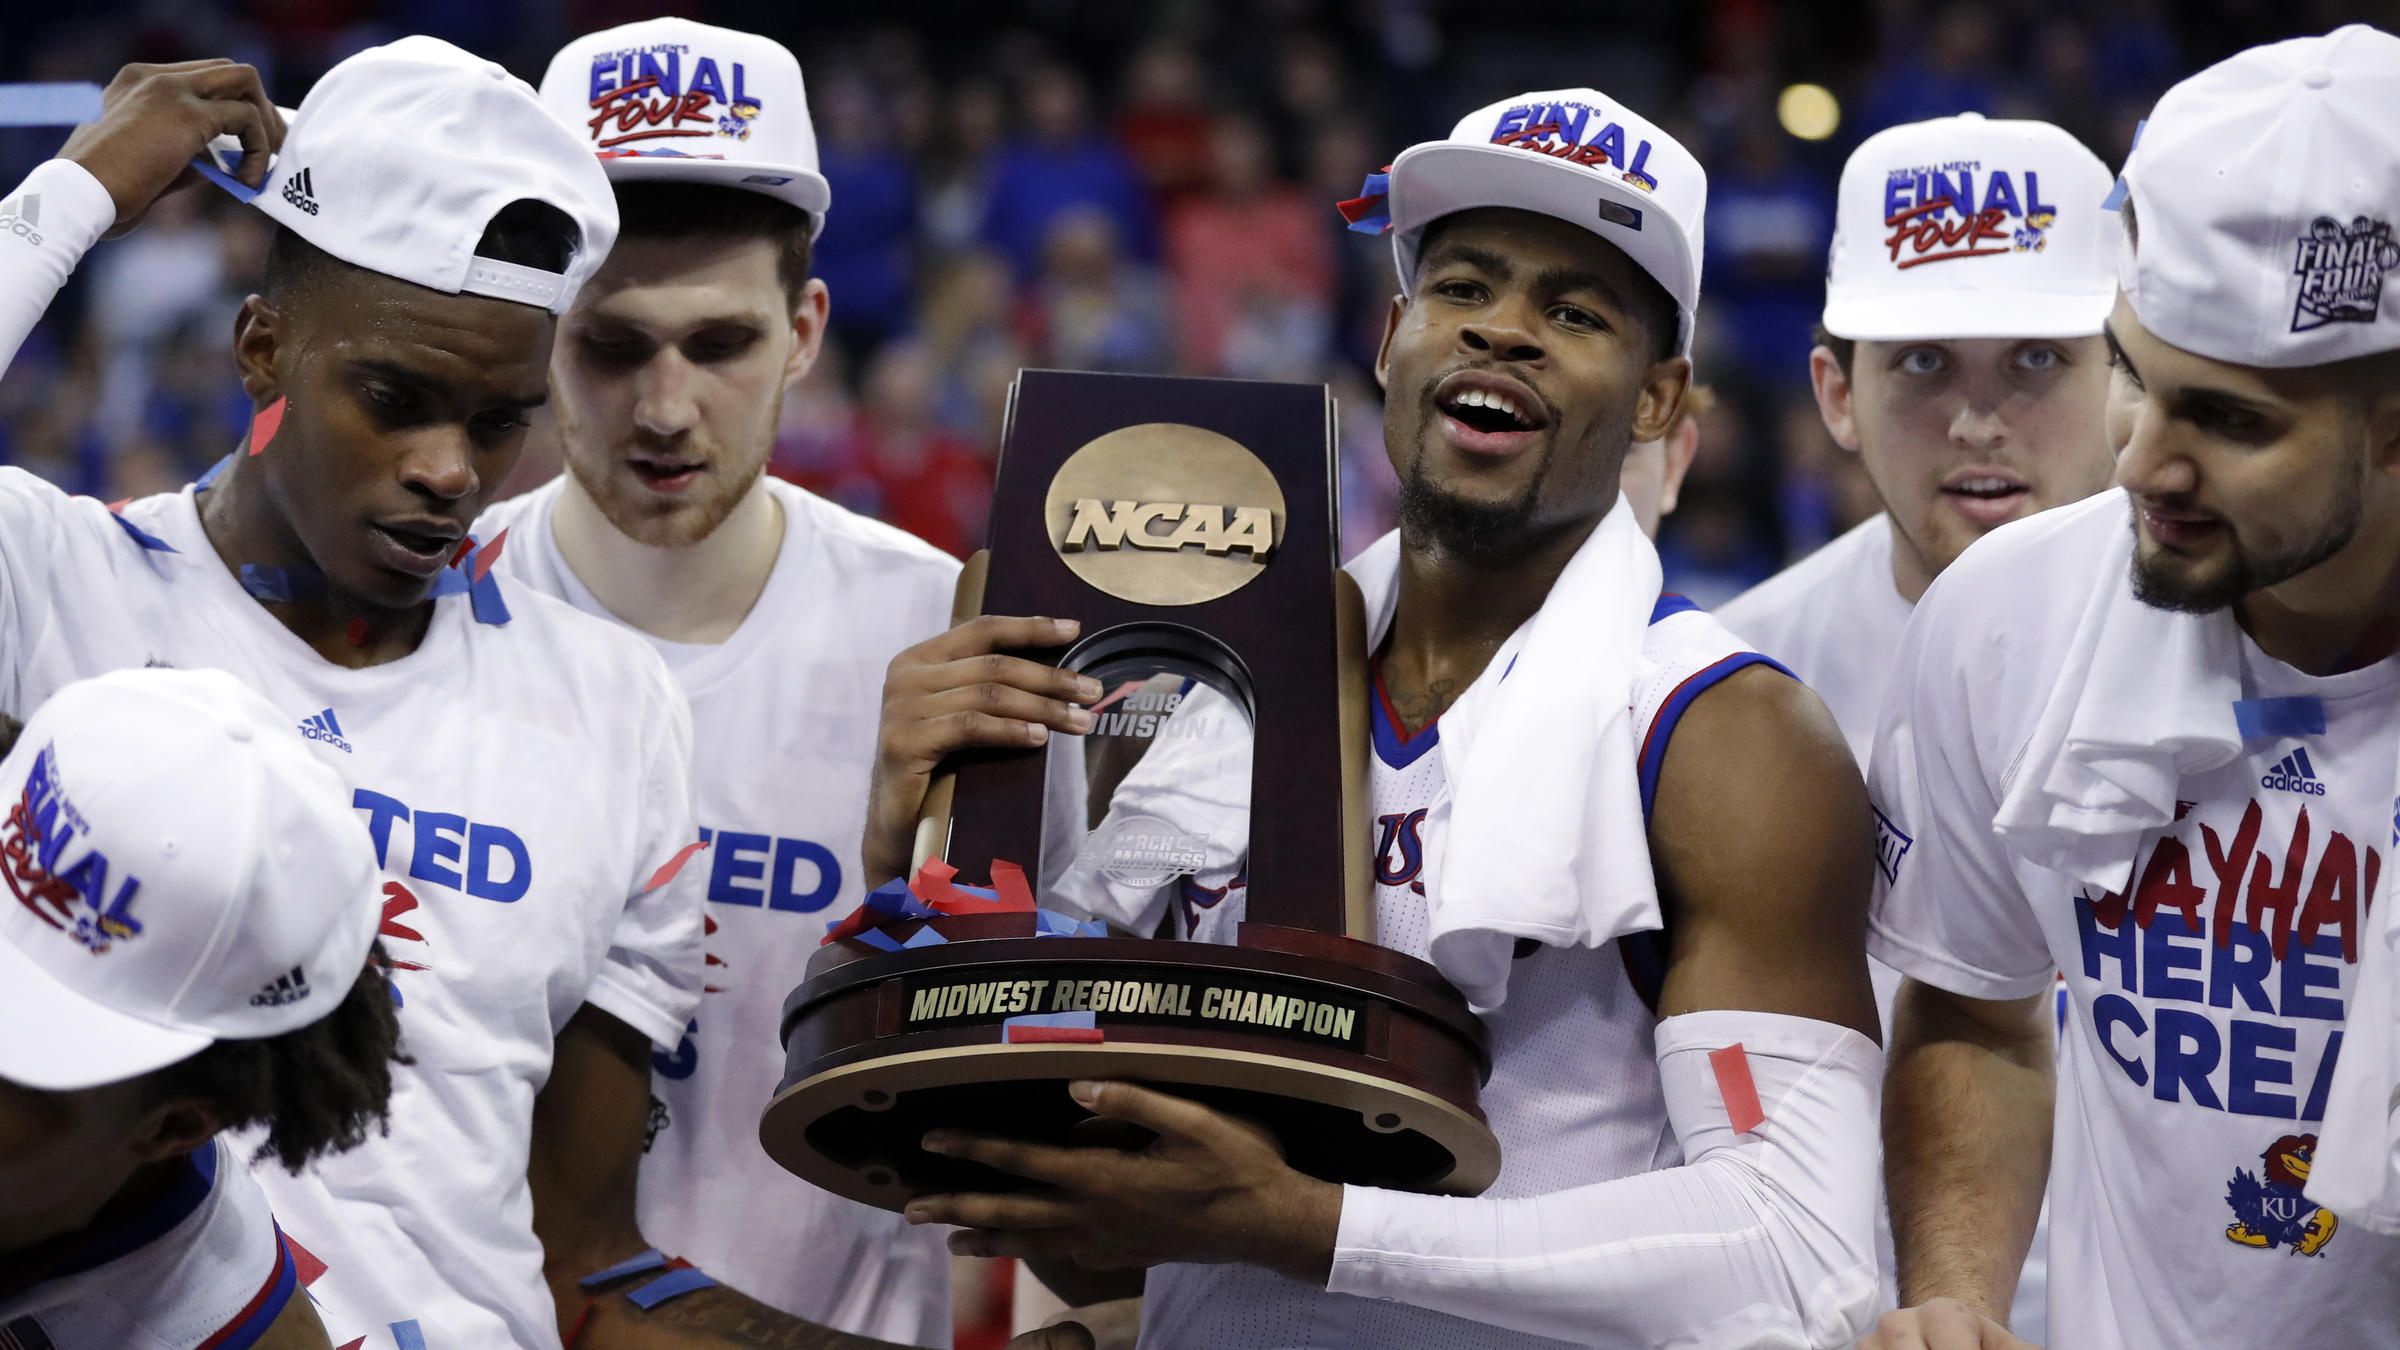 What was the Lowest Seed to Make the Final Four?